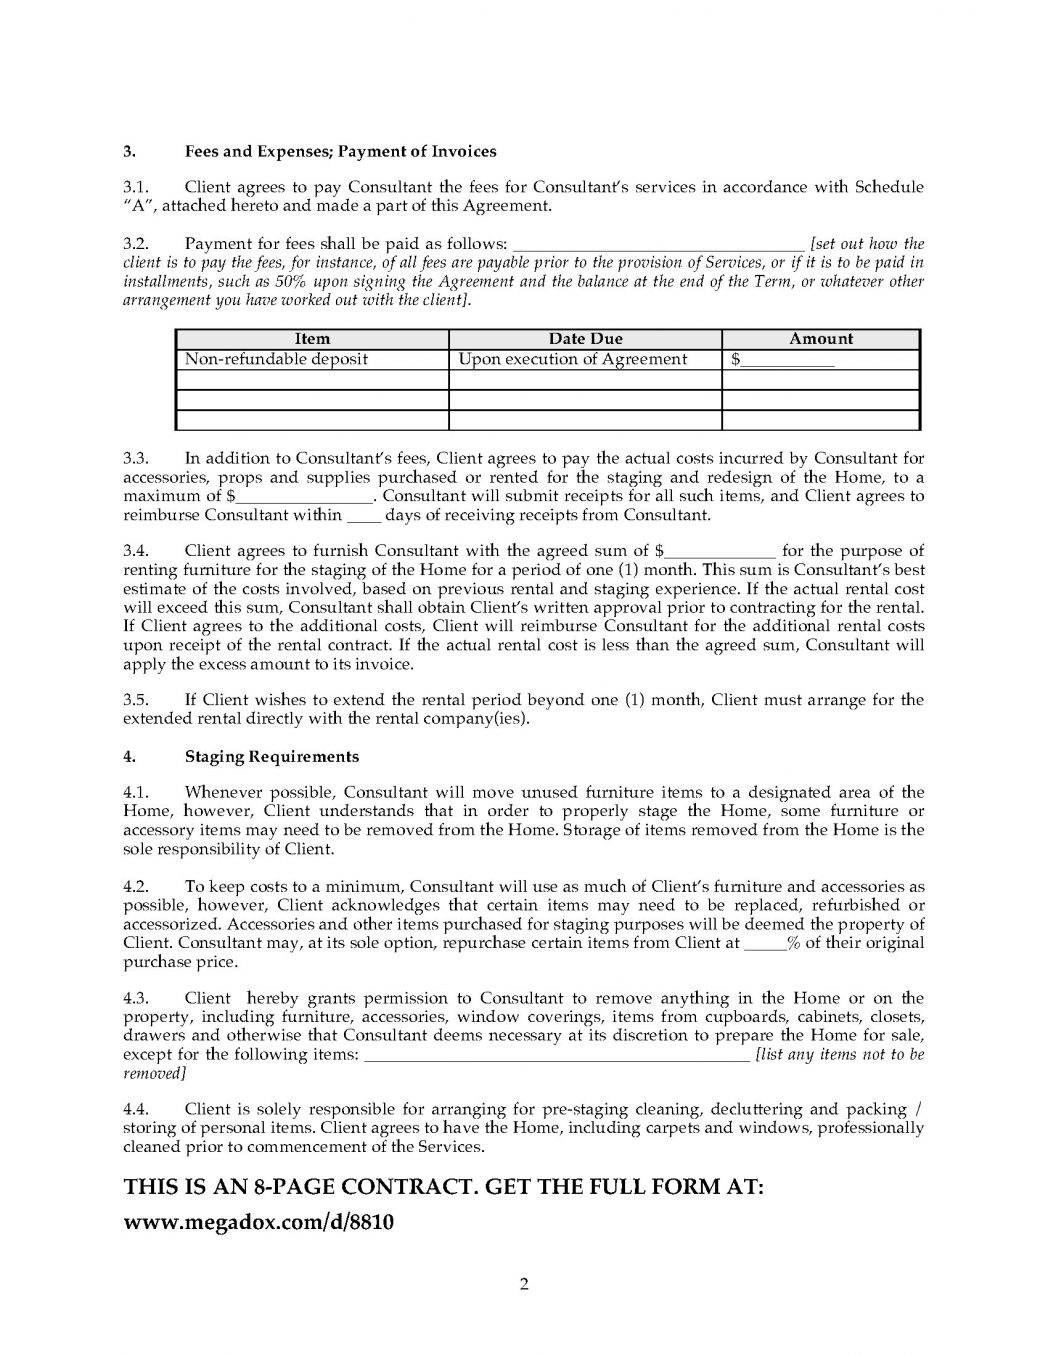 005 Example Ofpendix In Research Paper Buy Geometry Essay Ona Sample Furniture Purchase Invoice Template Home Staging Services Contract Legal Forms And Business R Format 1048x1356 Stupendous Appendices Appendix Meaning Full